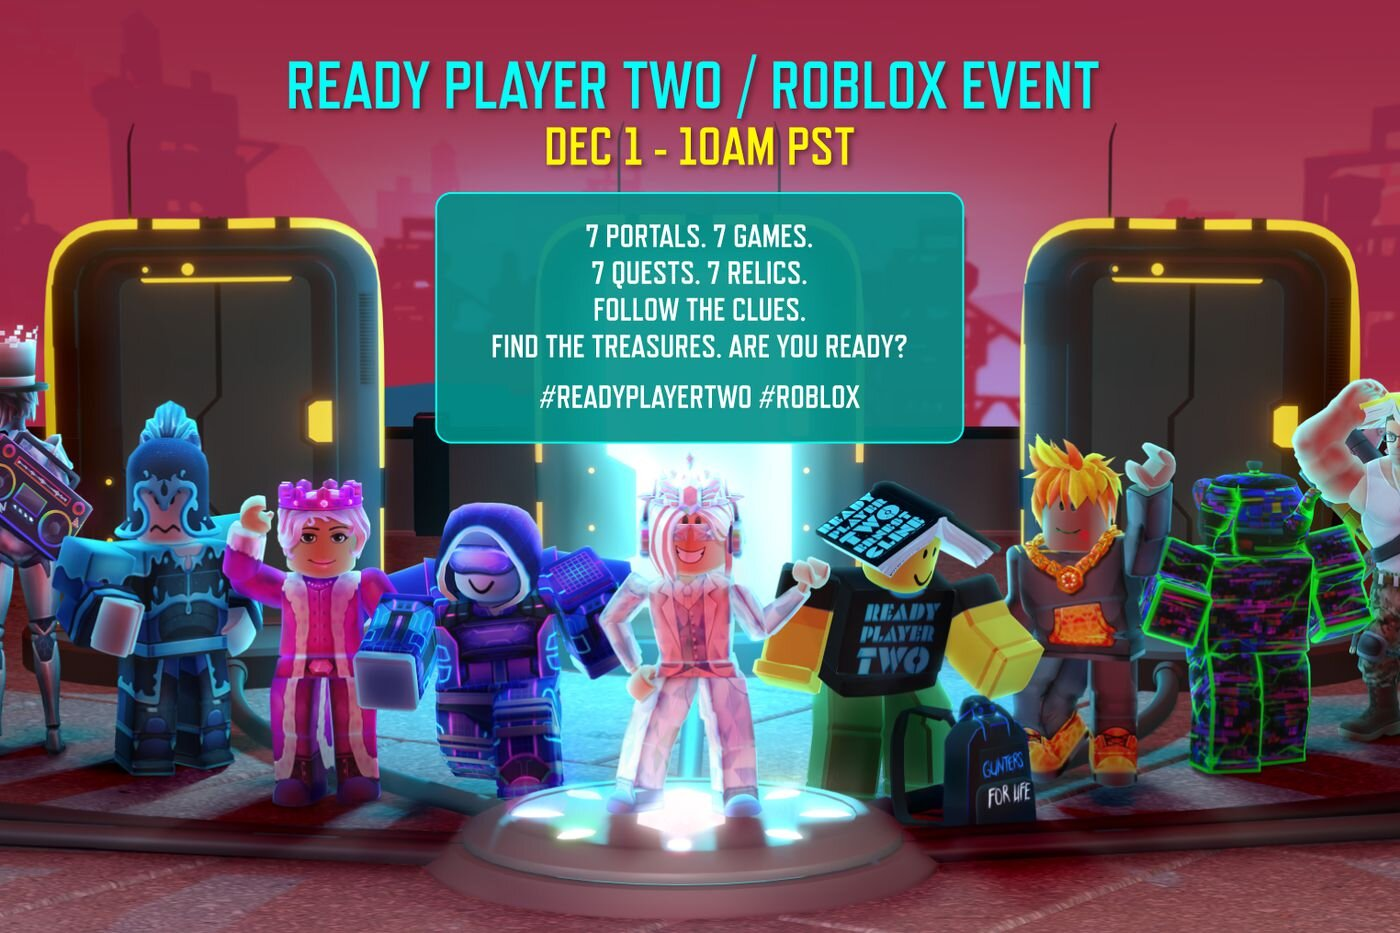 a7wefr6gbhf0om https geektyrant com news ready player two virtual treasure hunt announced by roblox